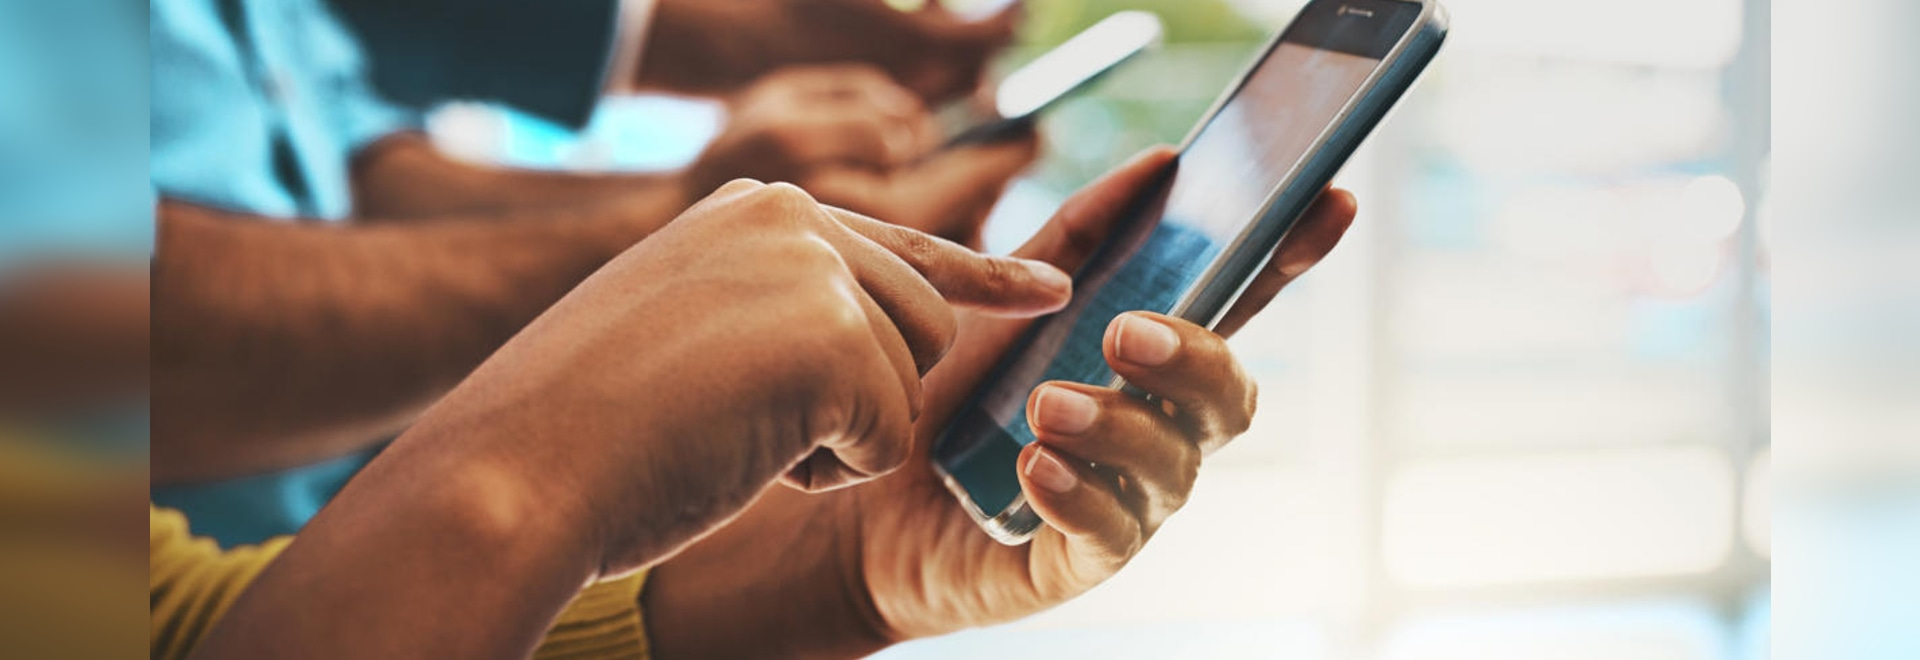 Africa turns to mobile apps to curb the coronavirus